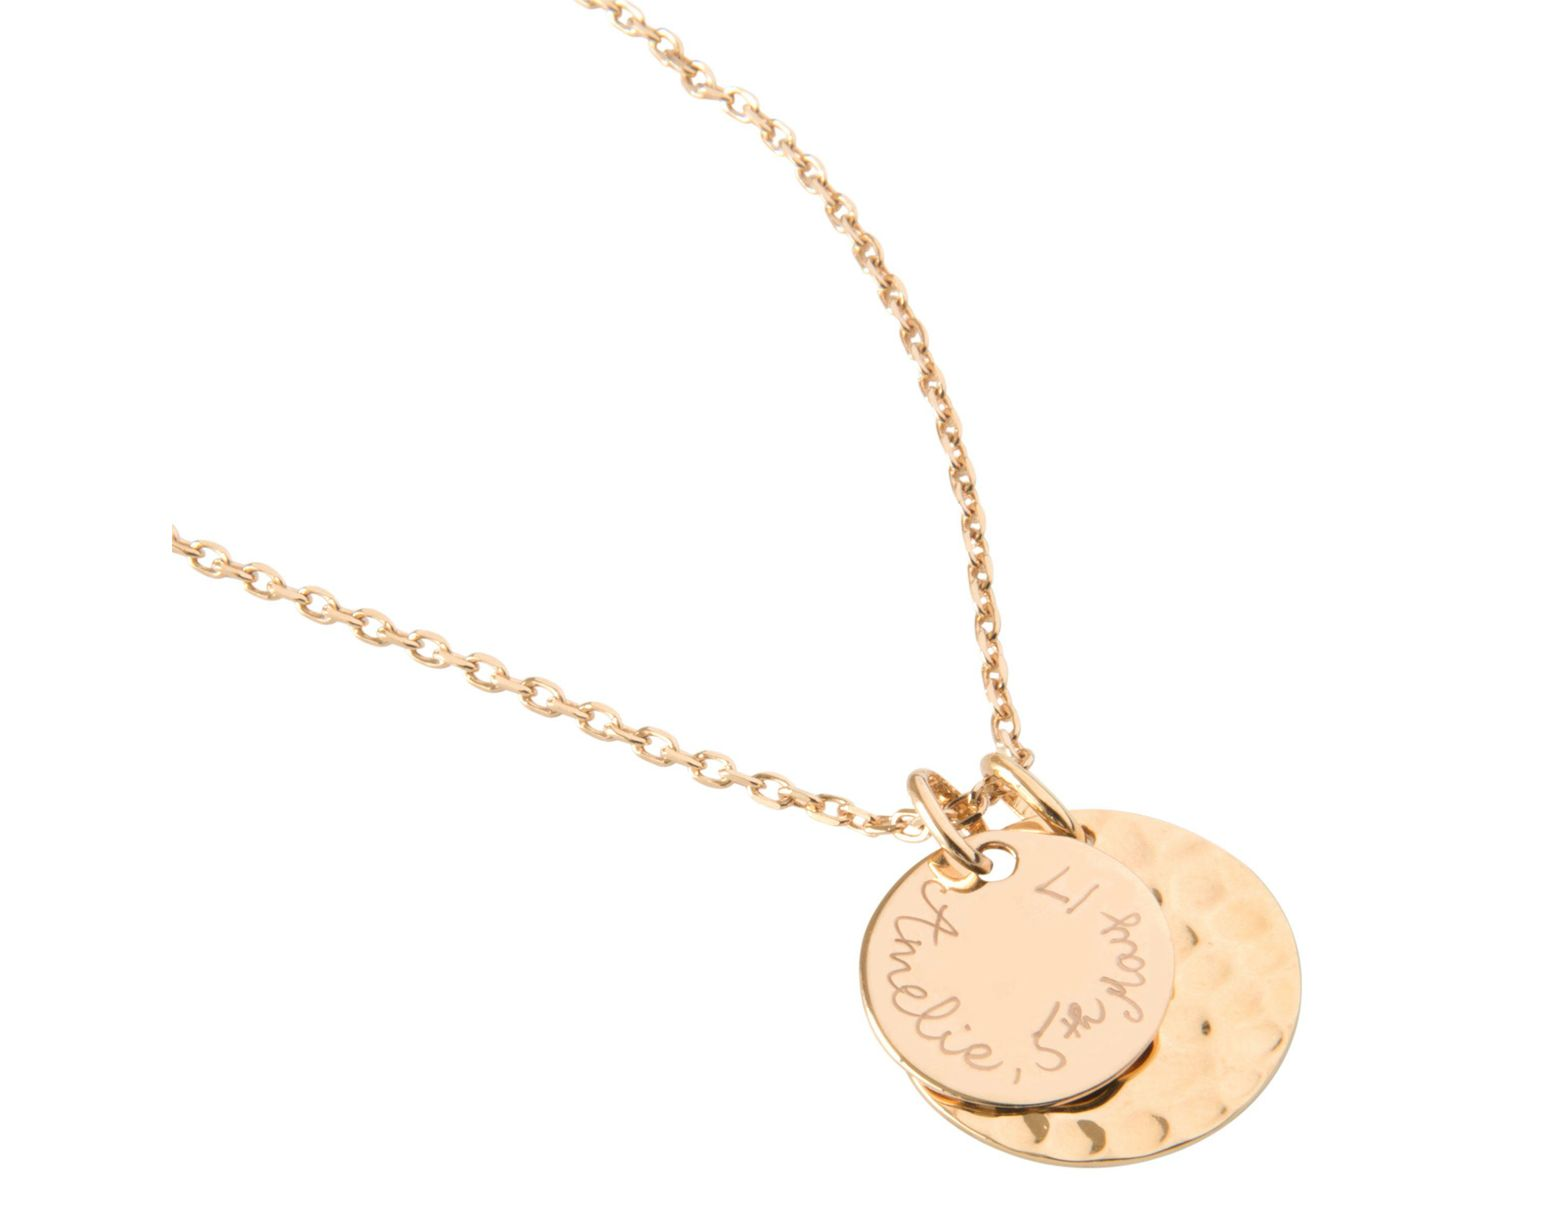 cbeff33f089c5 Women's Metallic Personalised Double Hammered And Polished Disc Pendant  Necklace